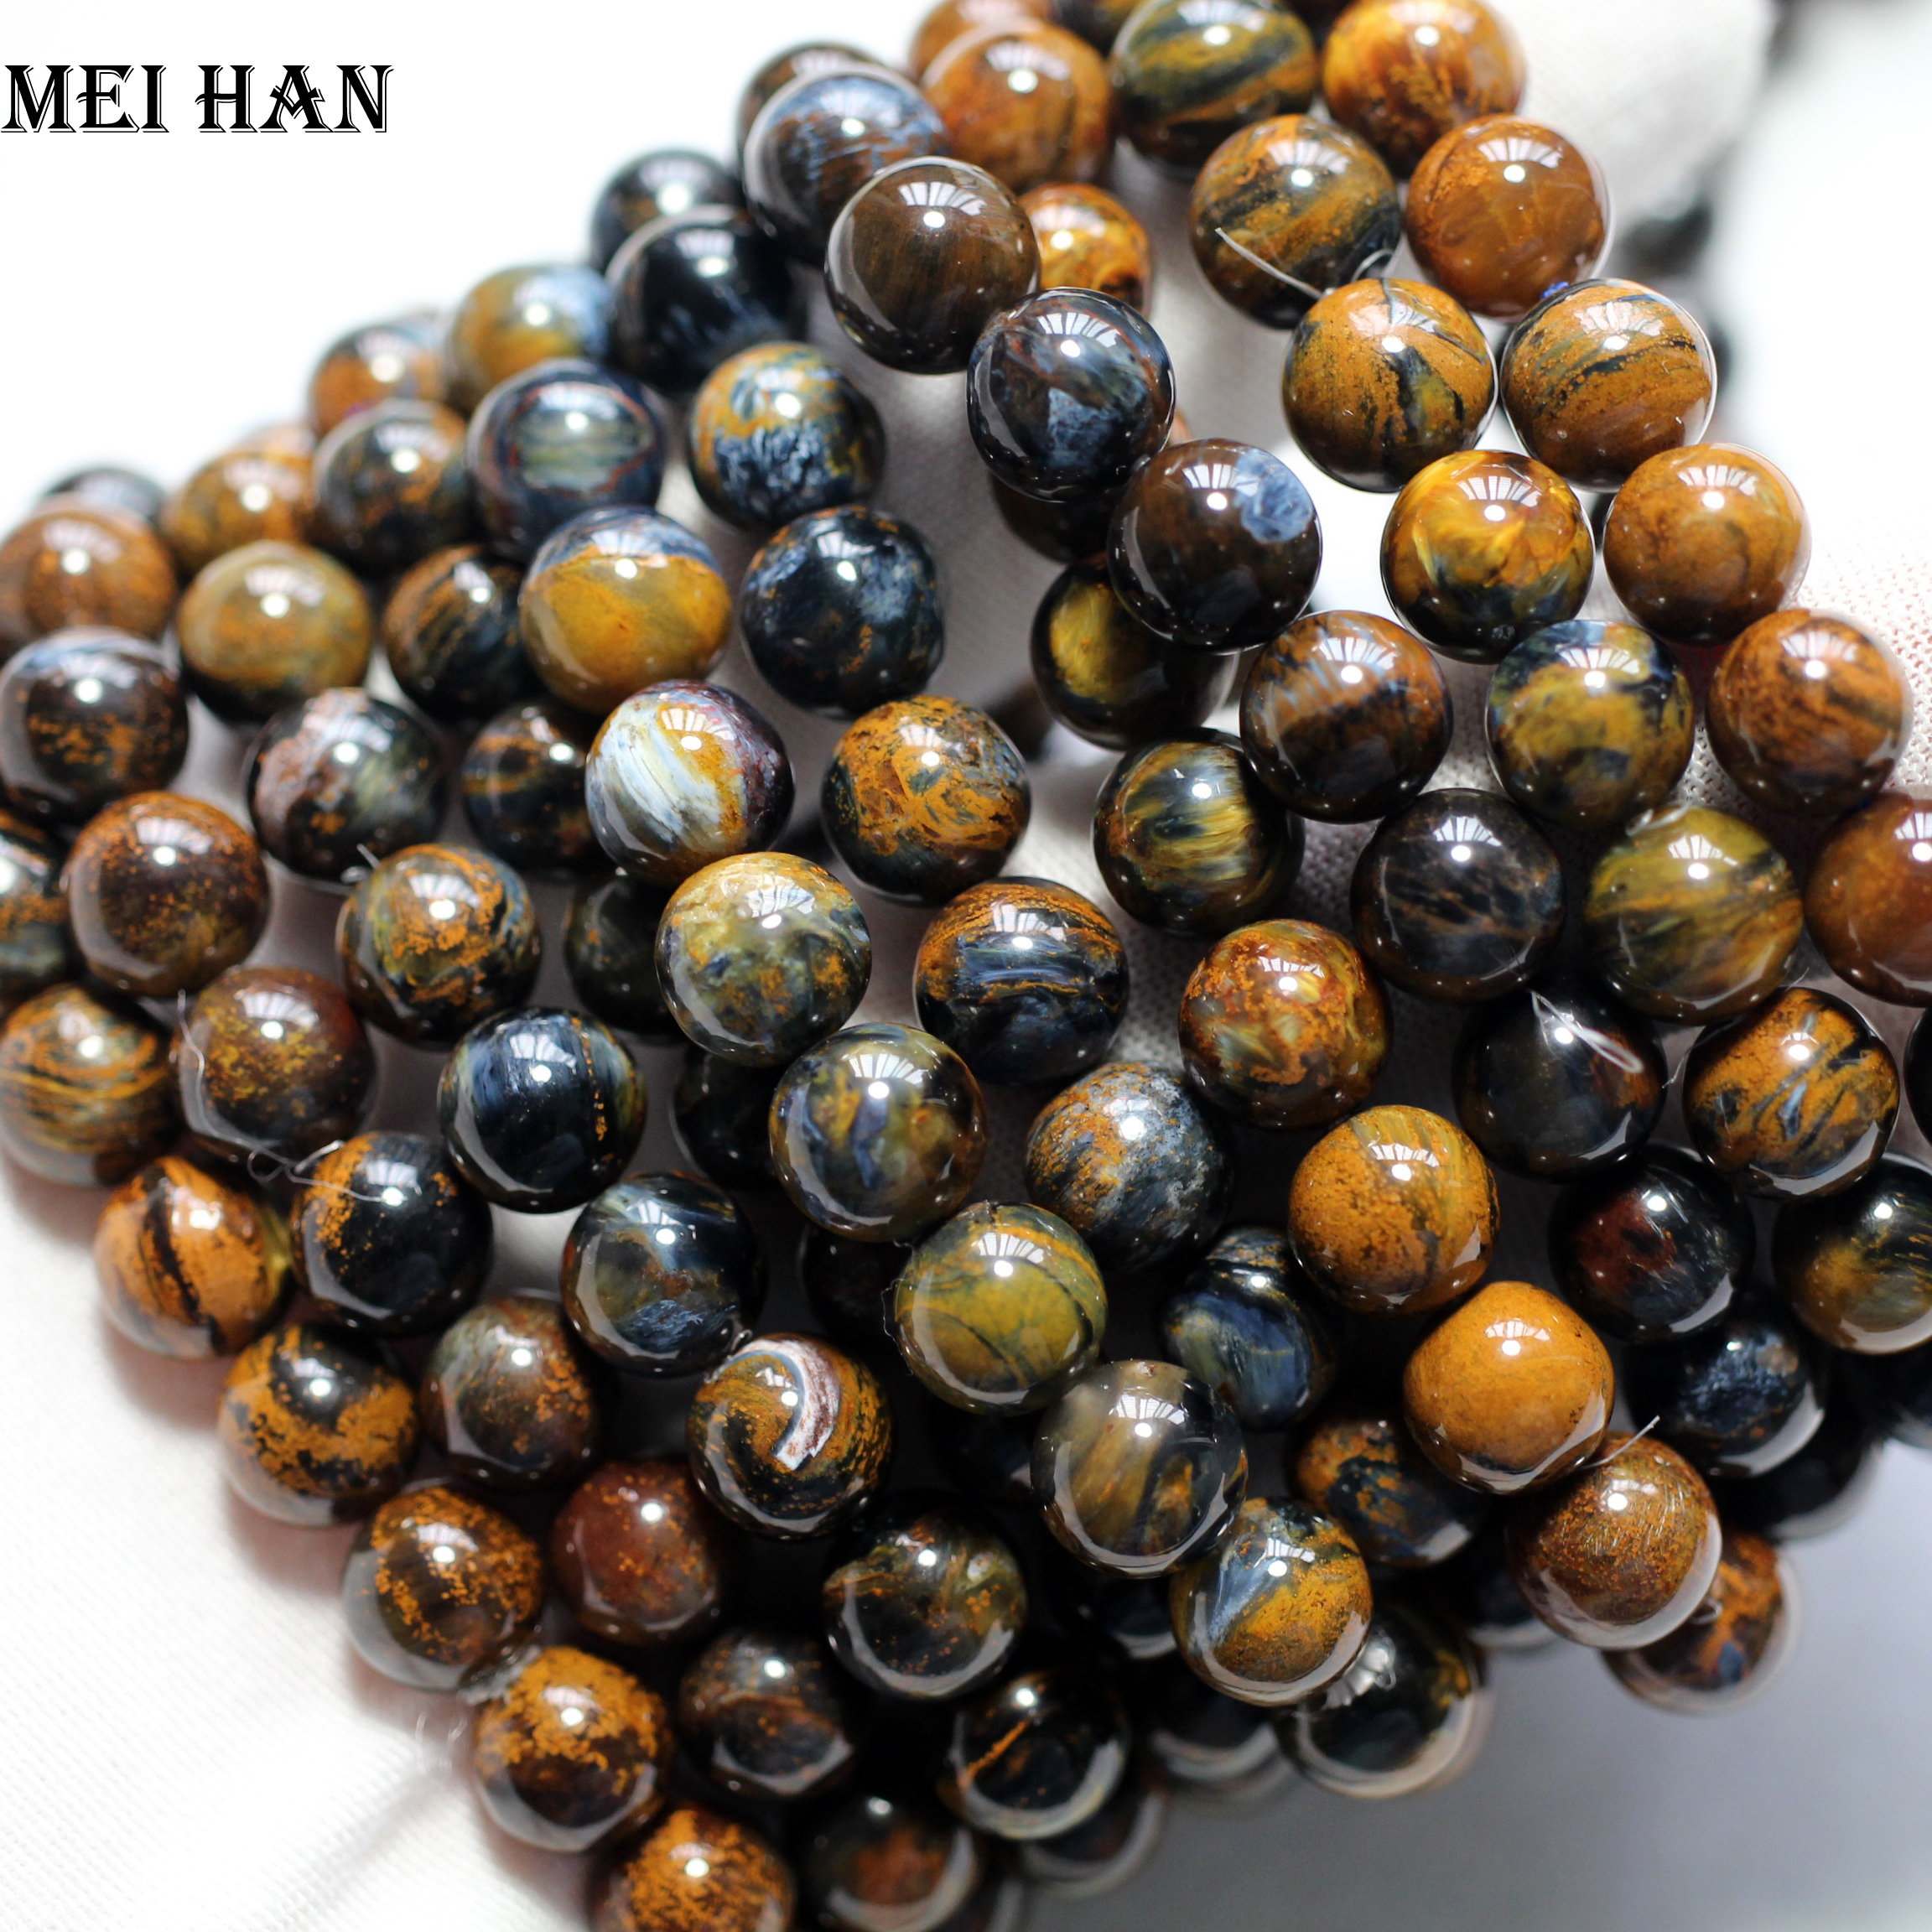 Miehan Free shipping (21beads/set/19g) A++ natural 8.5-9mm Namibia Pietersite smooth round beads for jewelry making design